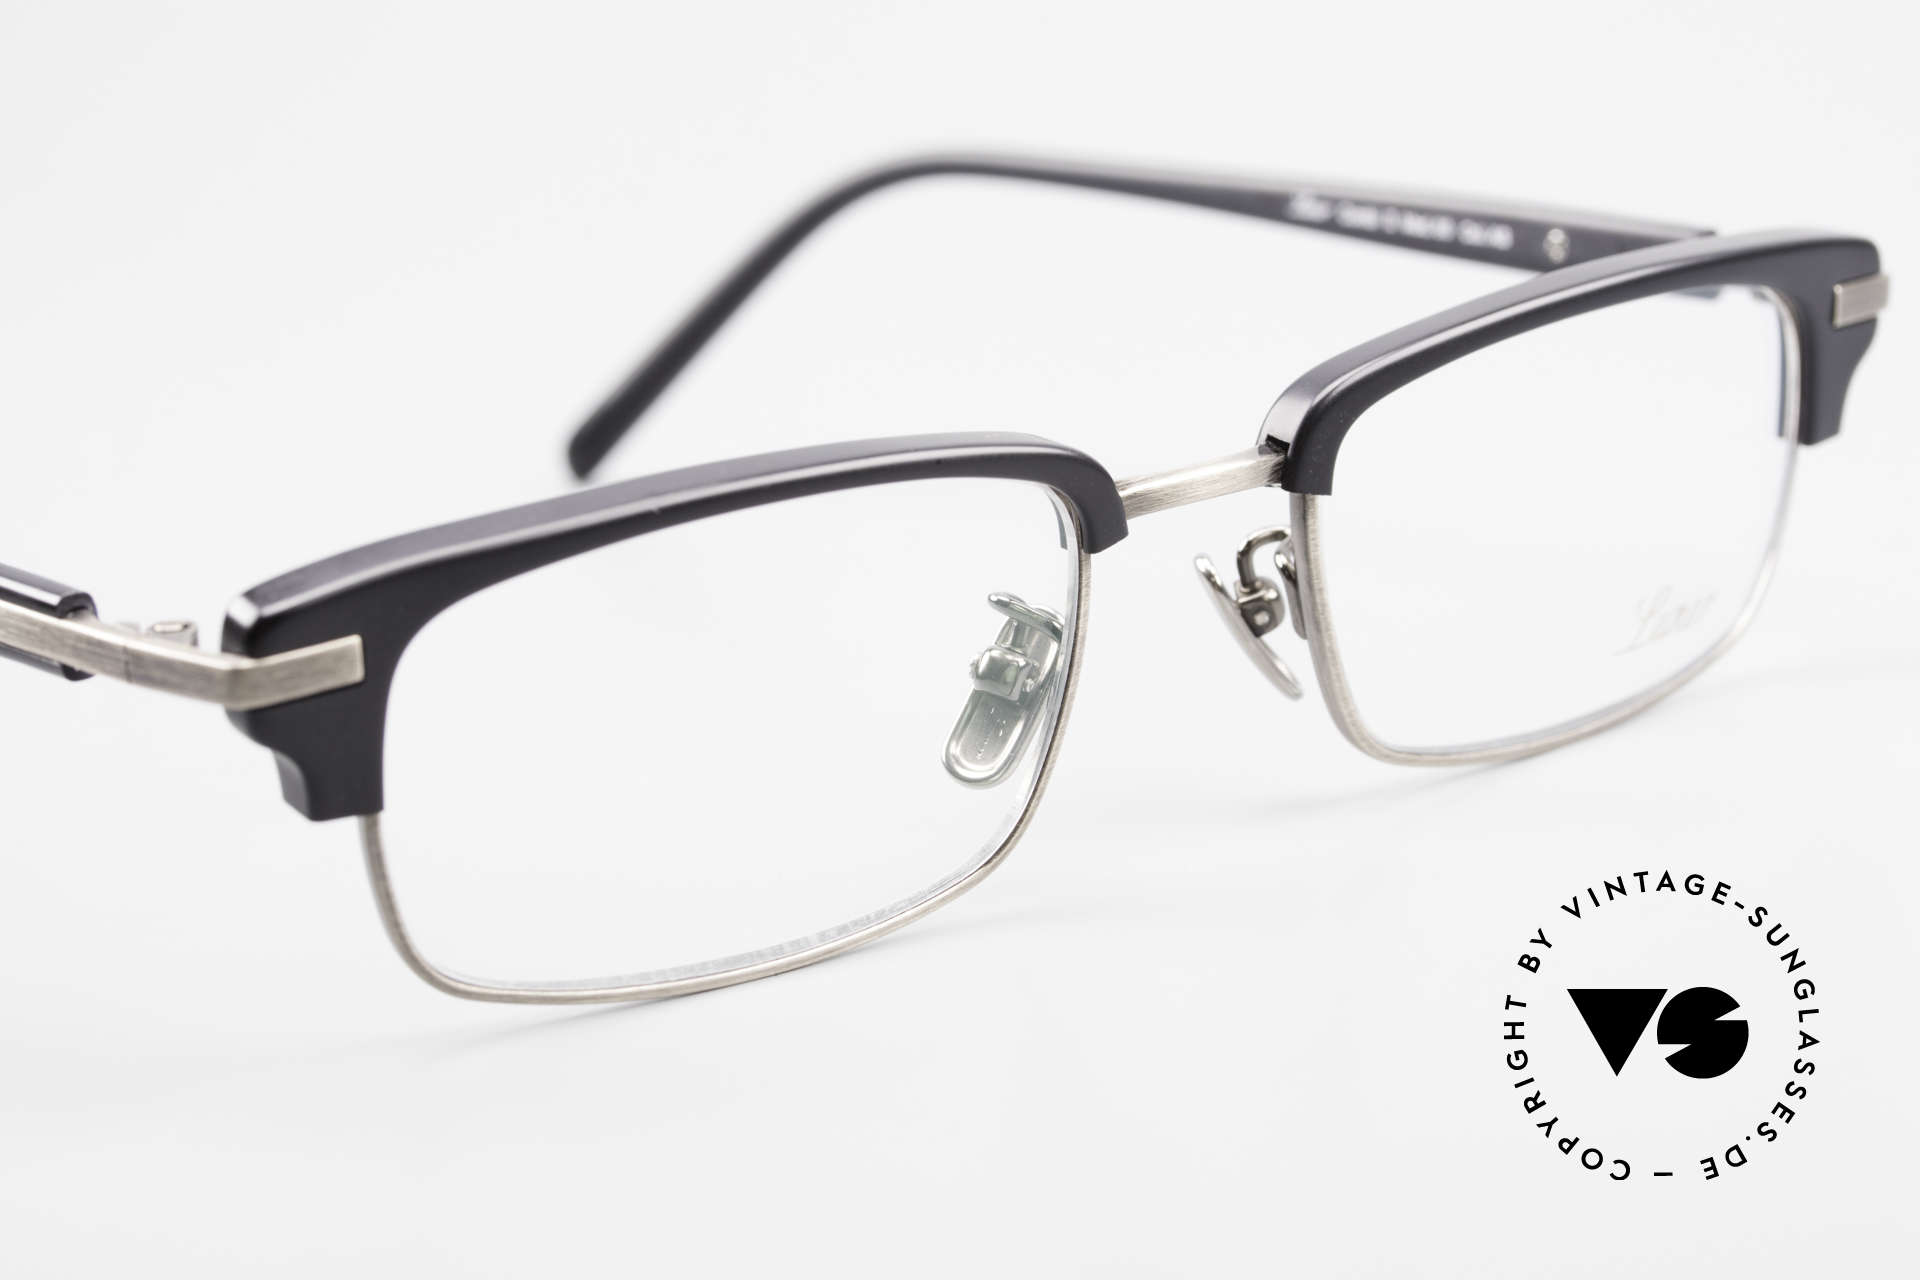 Lunor Combi II Mod 80 Combi Titanium Eyeglasses, quality frame (made in Japan) can be glazed optionally, Made for Men and Women